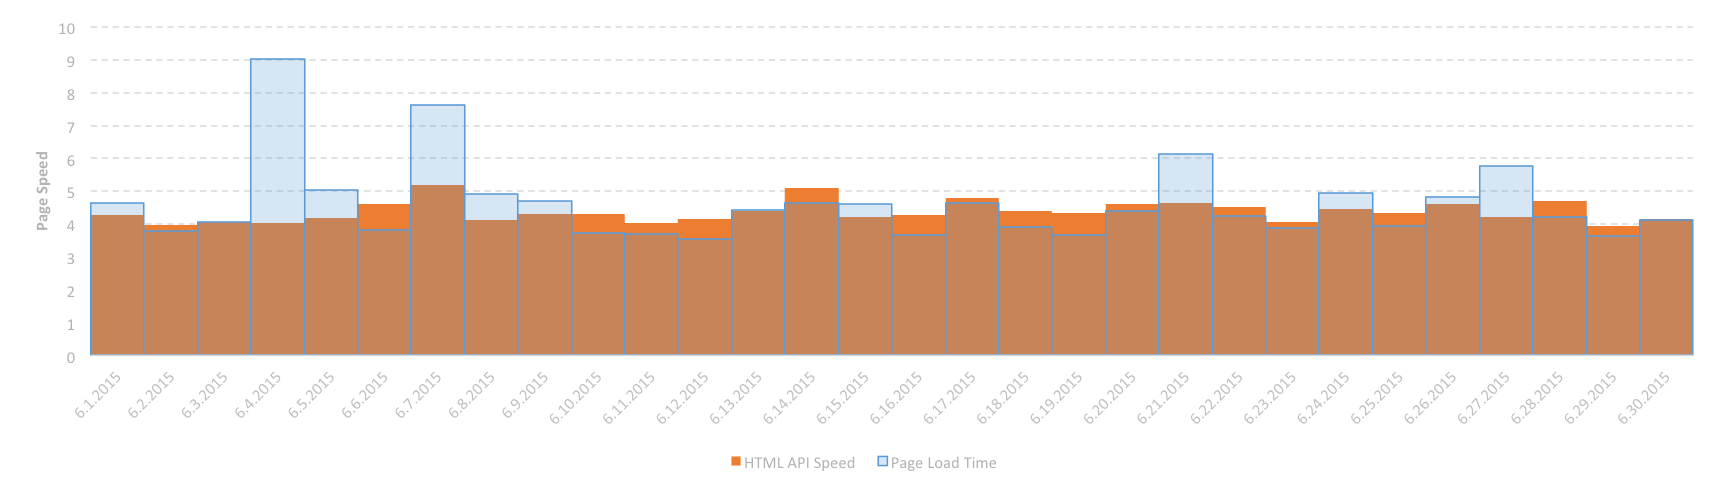 Page Load Speed per Day